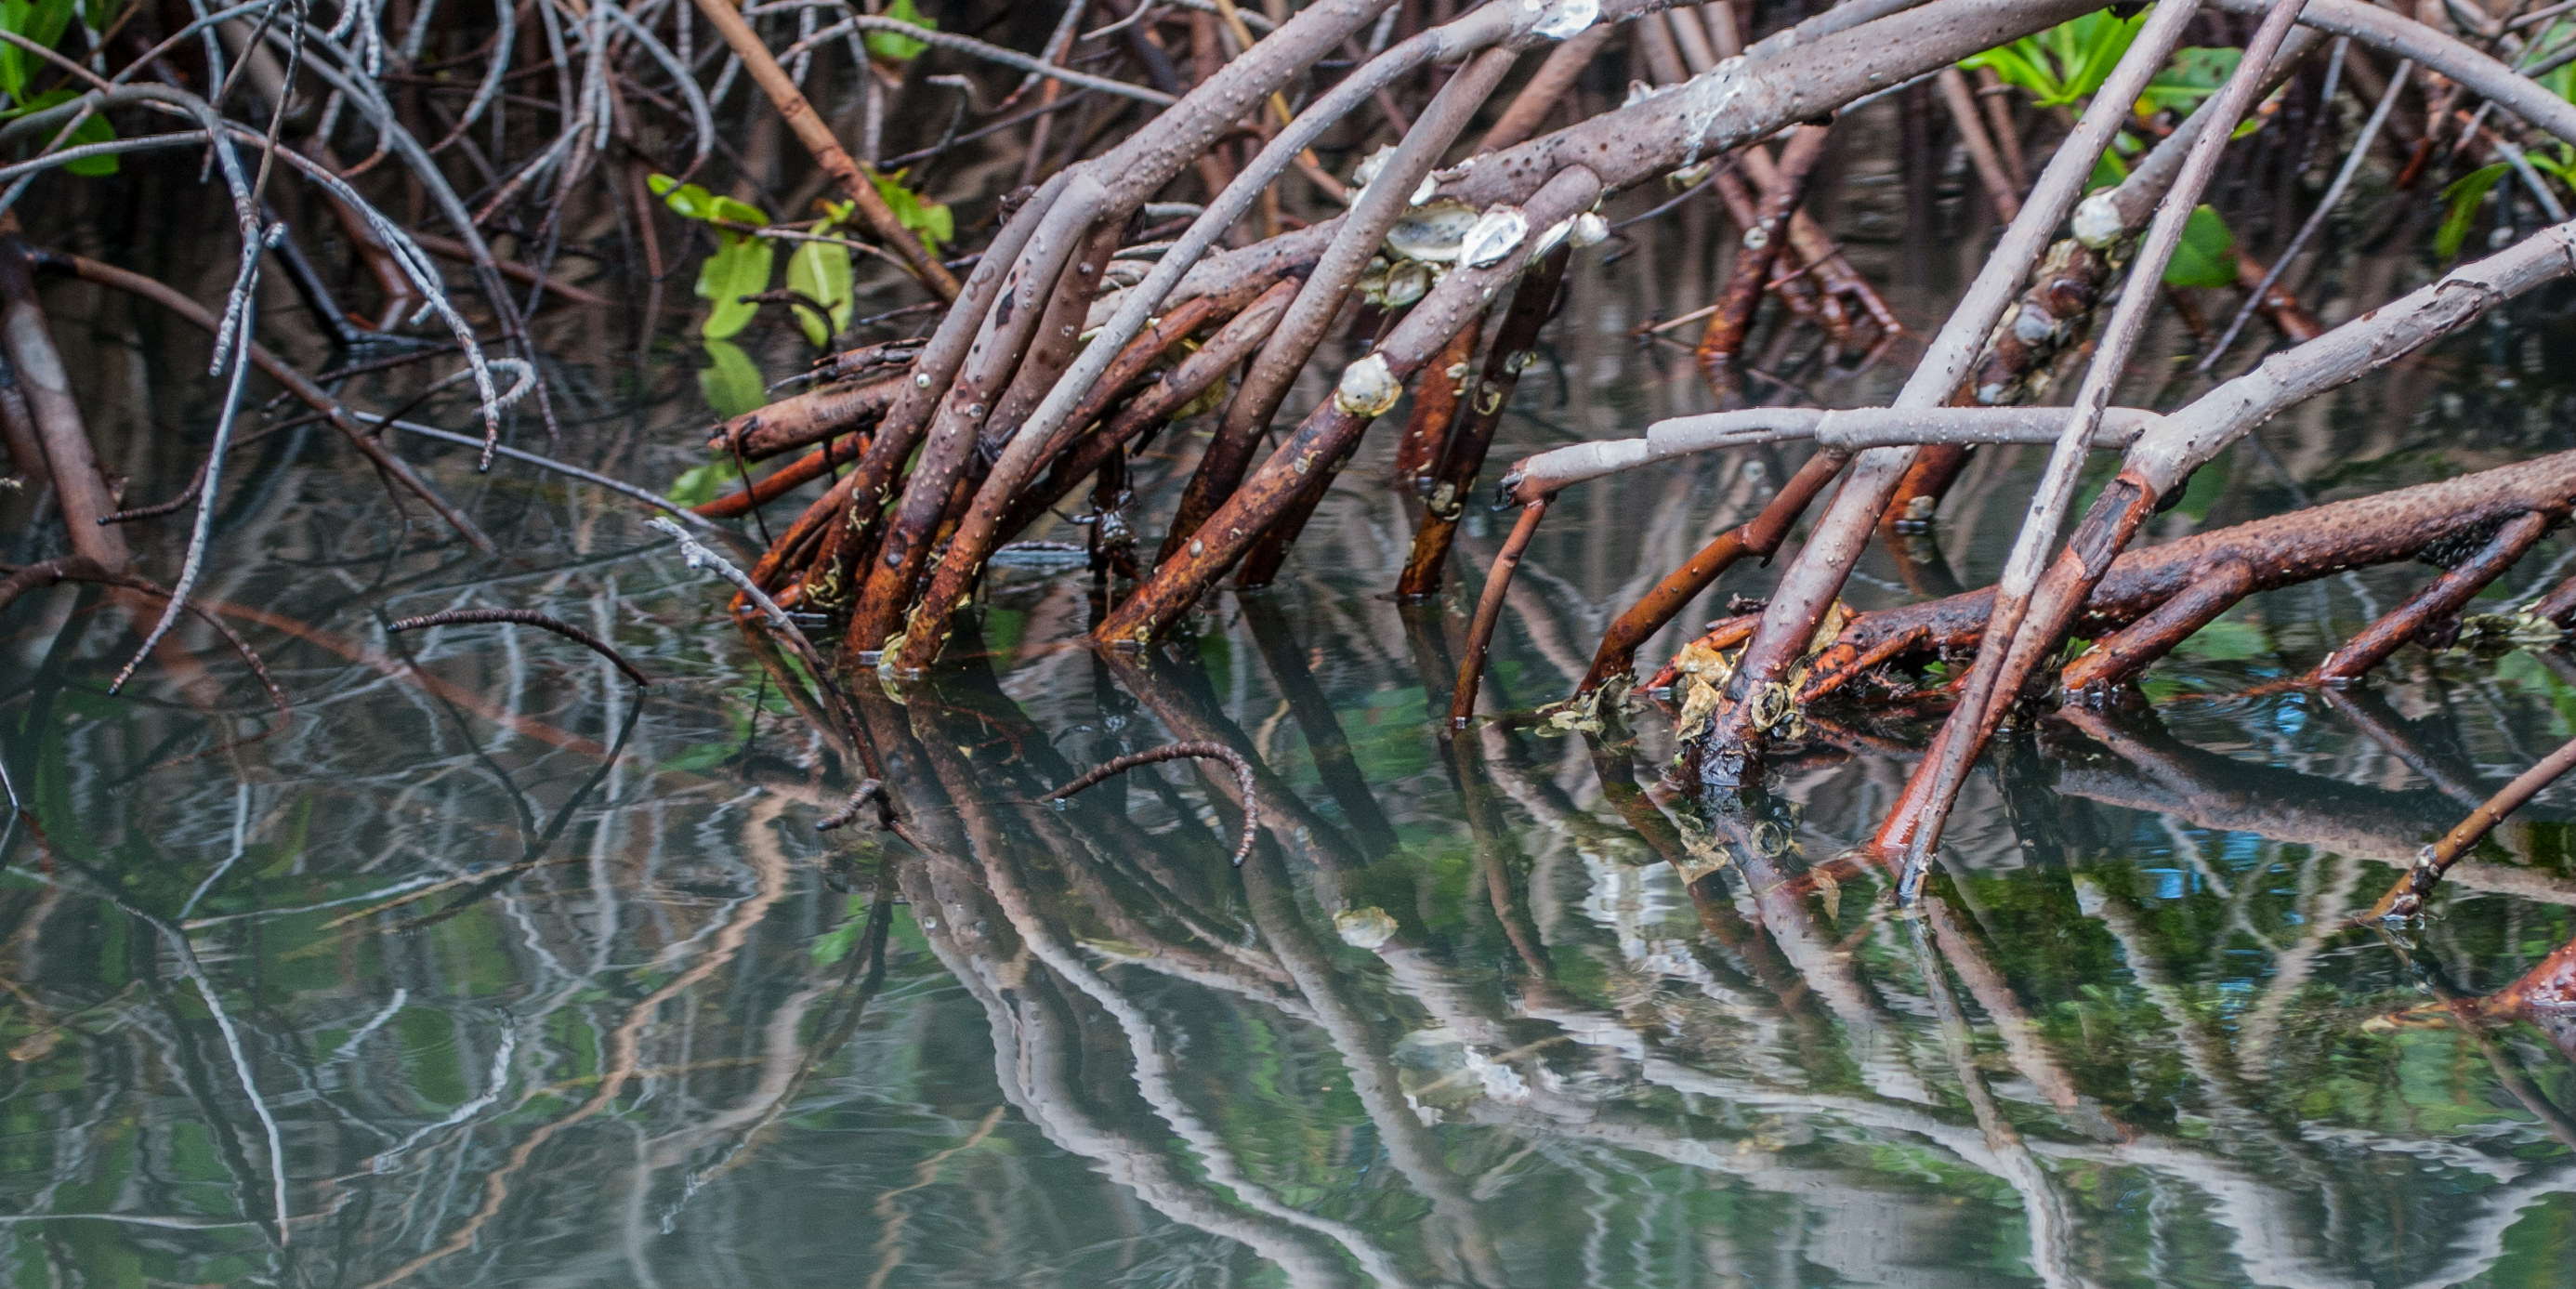 Mangrove roots are nurseries for species such as the sicklefin lemon shark.